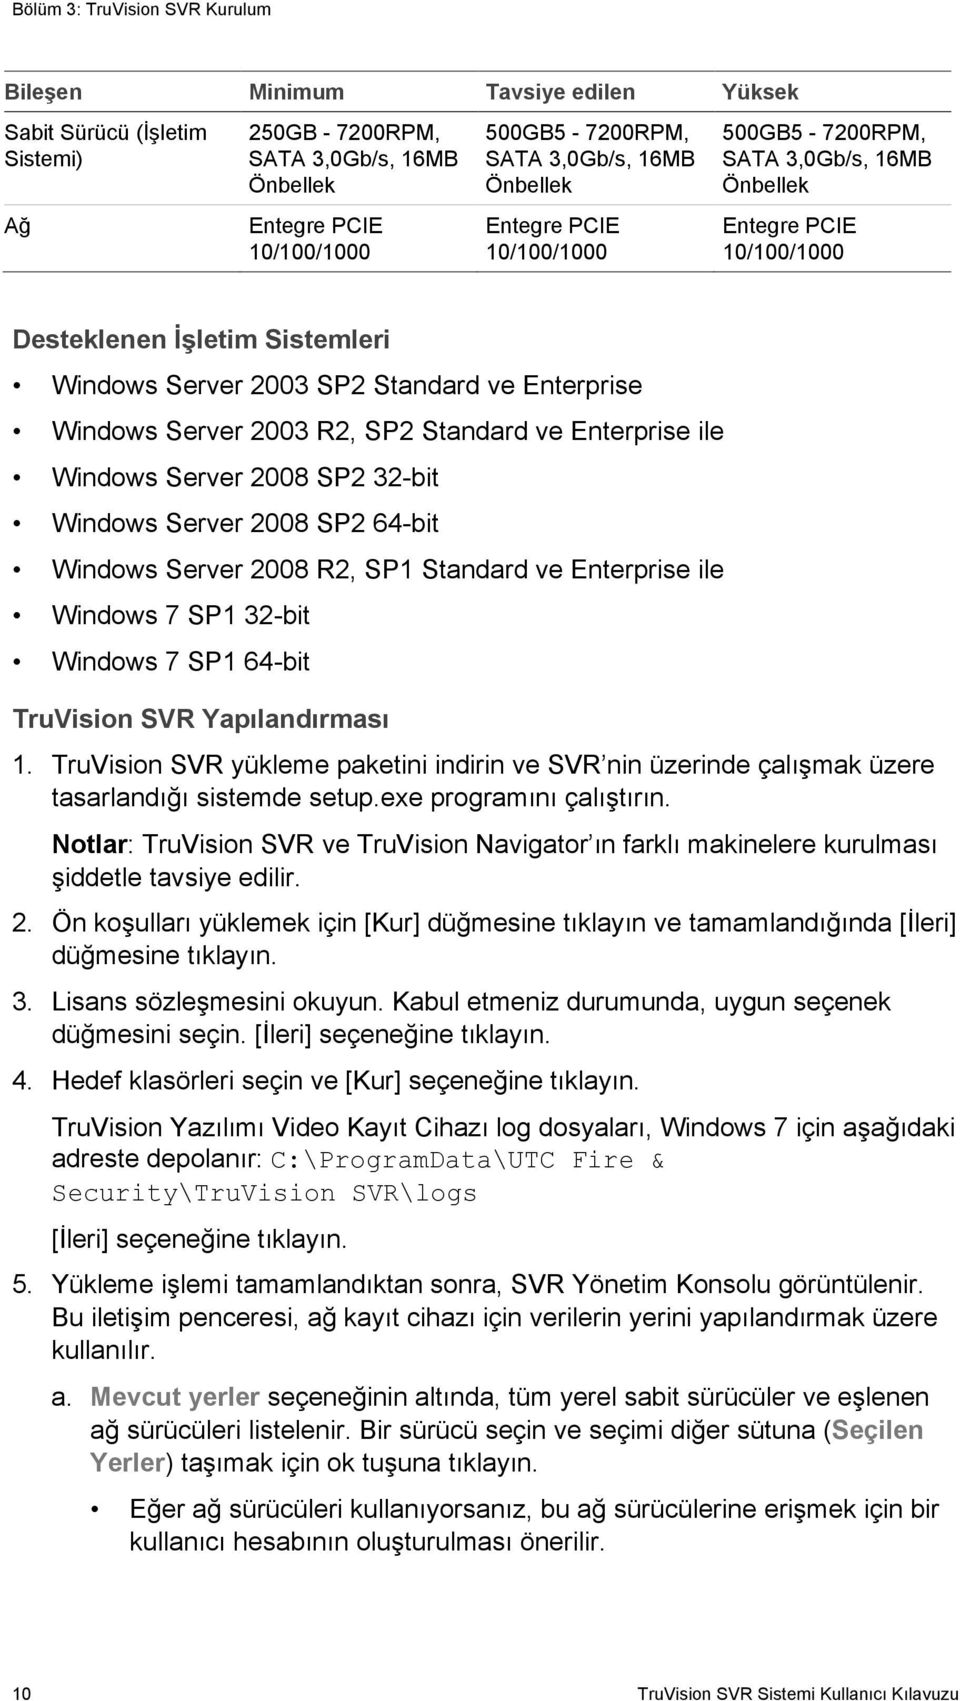 Windows Server 2003 R2, SP2 Standard ve Enterprise ile Windows Server 2008 SP2 32-bit Windows Server 2008 SP2 64-bit Windows Server 2008 R2, SP1 Standard ve Enterprise ile Windows 7 SP1 32-bit